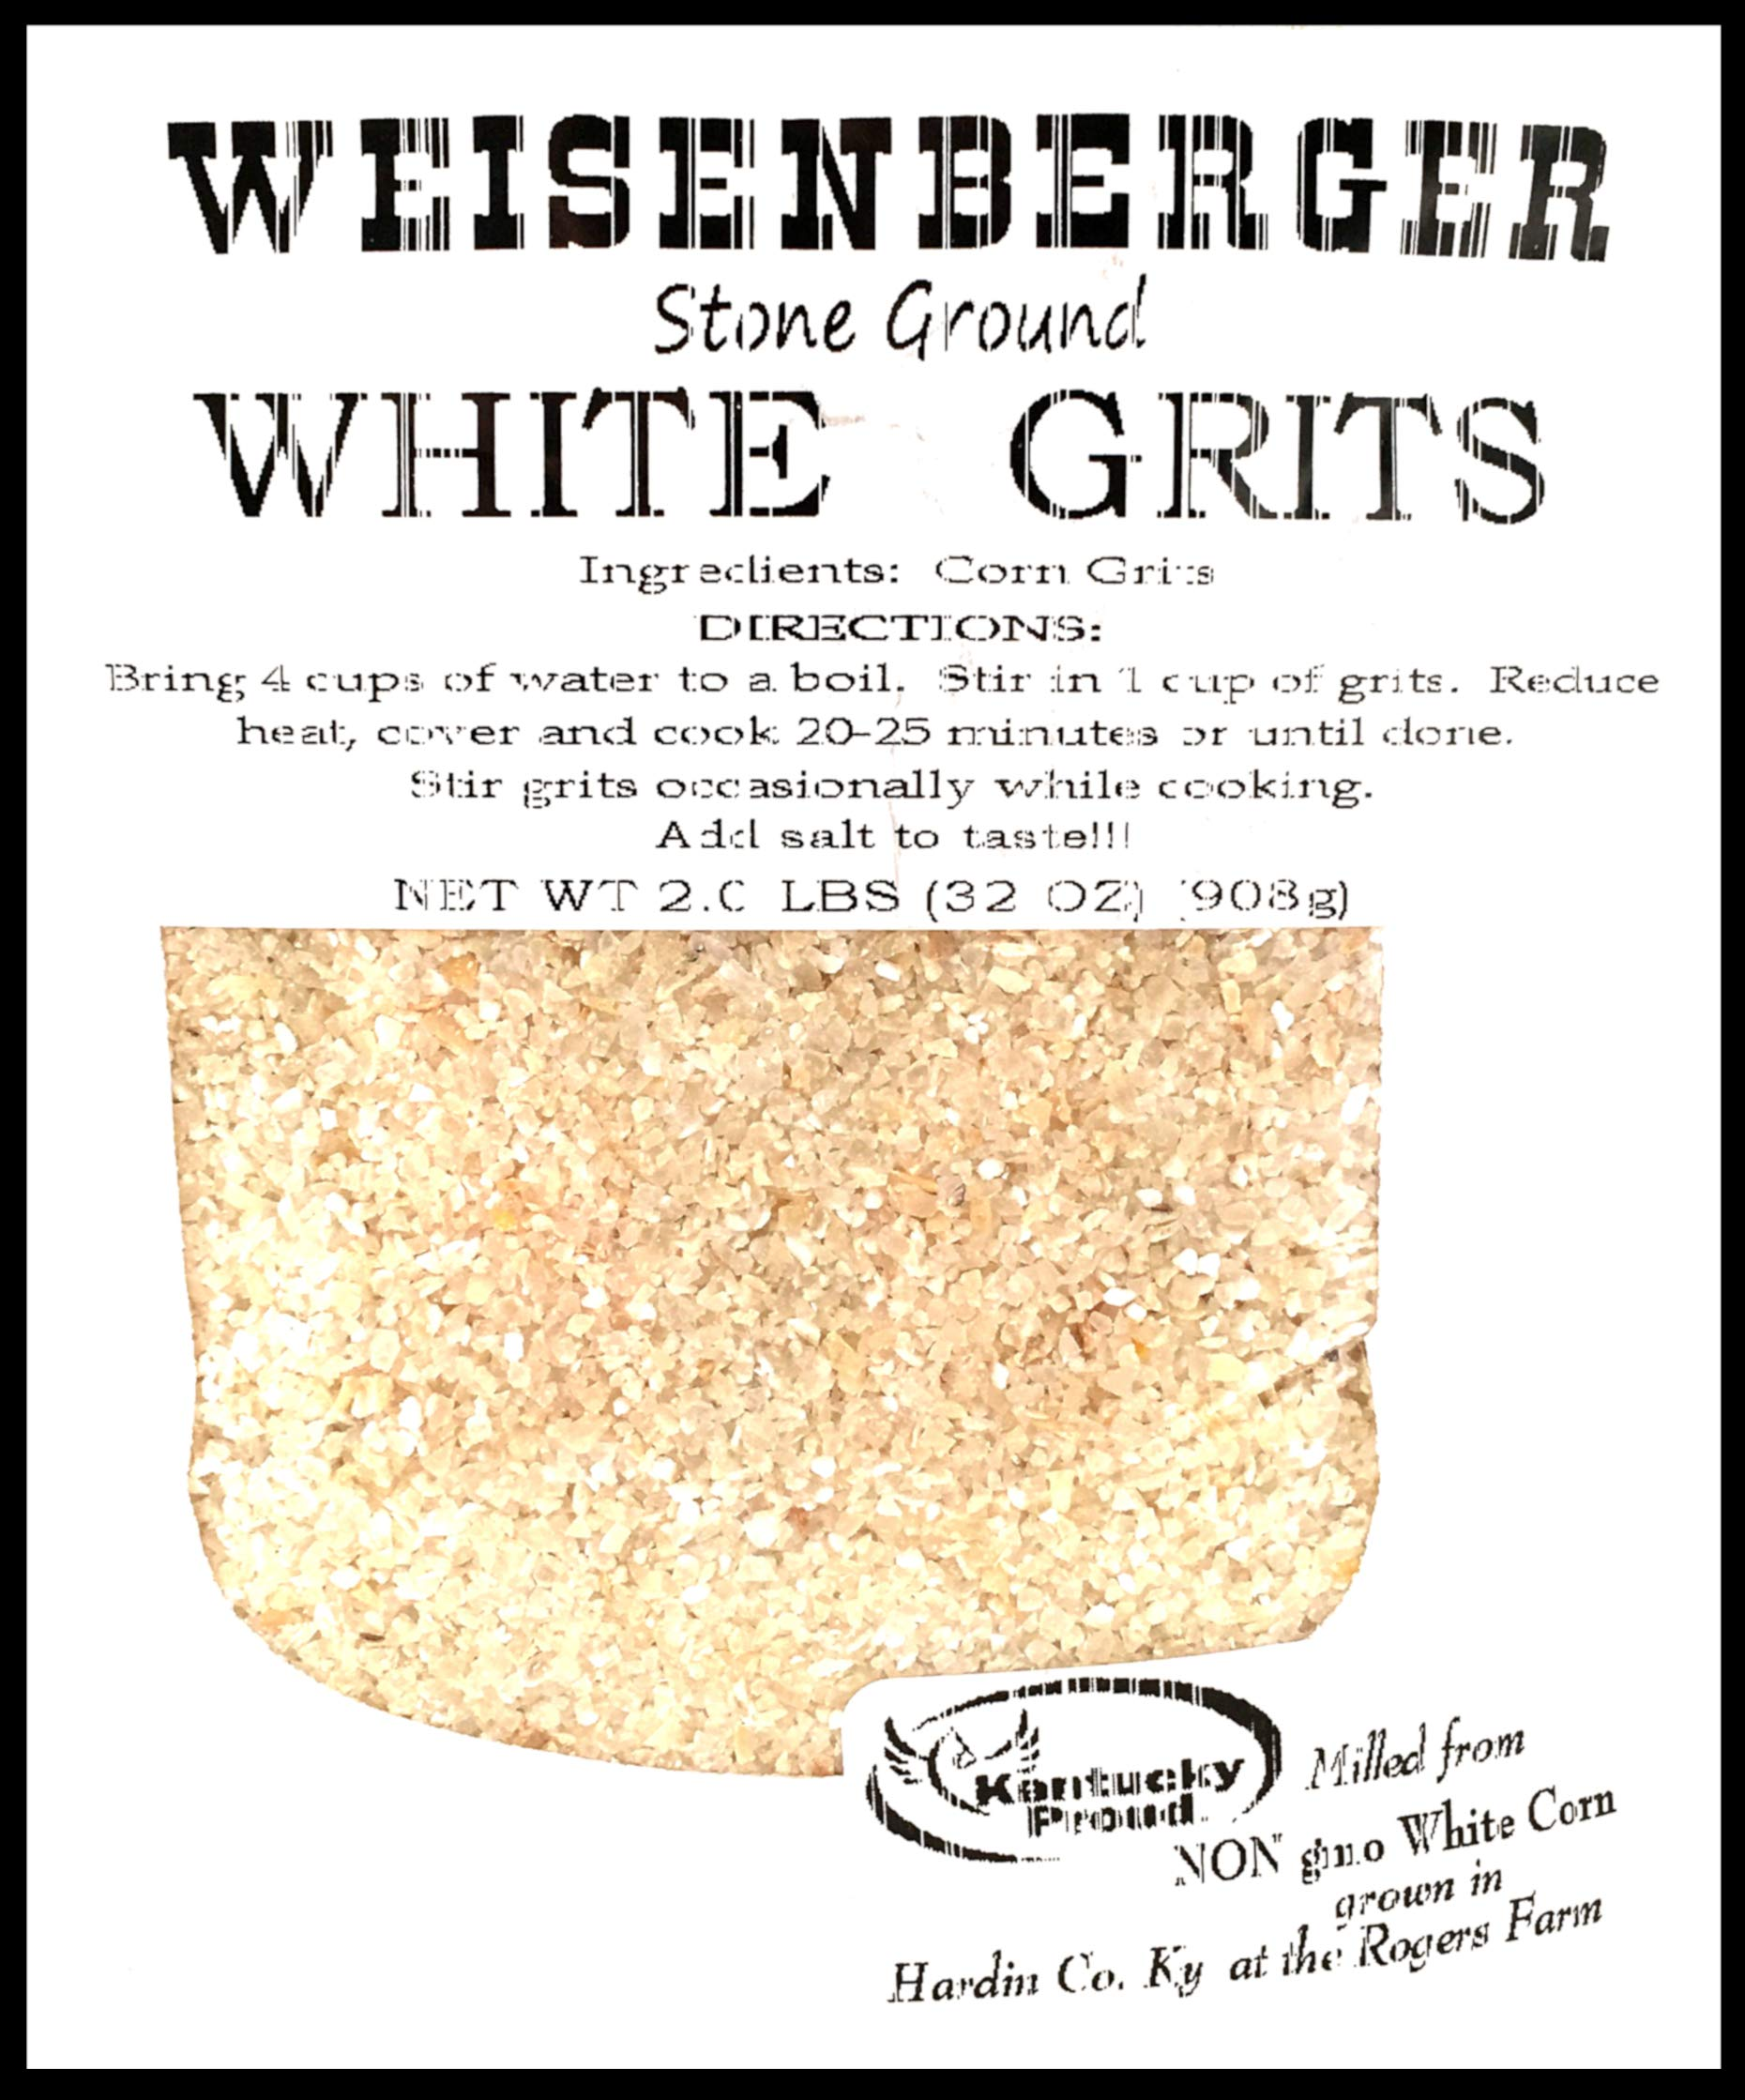 Weisenberger Stone Ground White Grits - Authentic, Old Fashioned, Southern Style Corn Grits - Local Kentucky Proud Product - Non GMO Course Ground Cornmeal Grits - White, 2 lb - 2 Pack